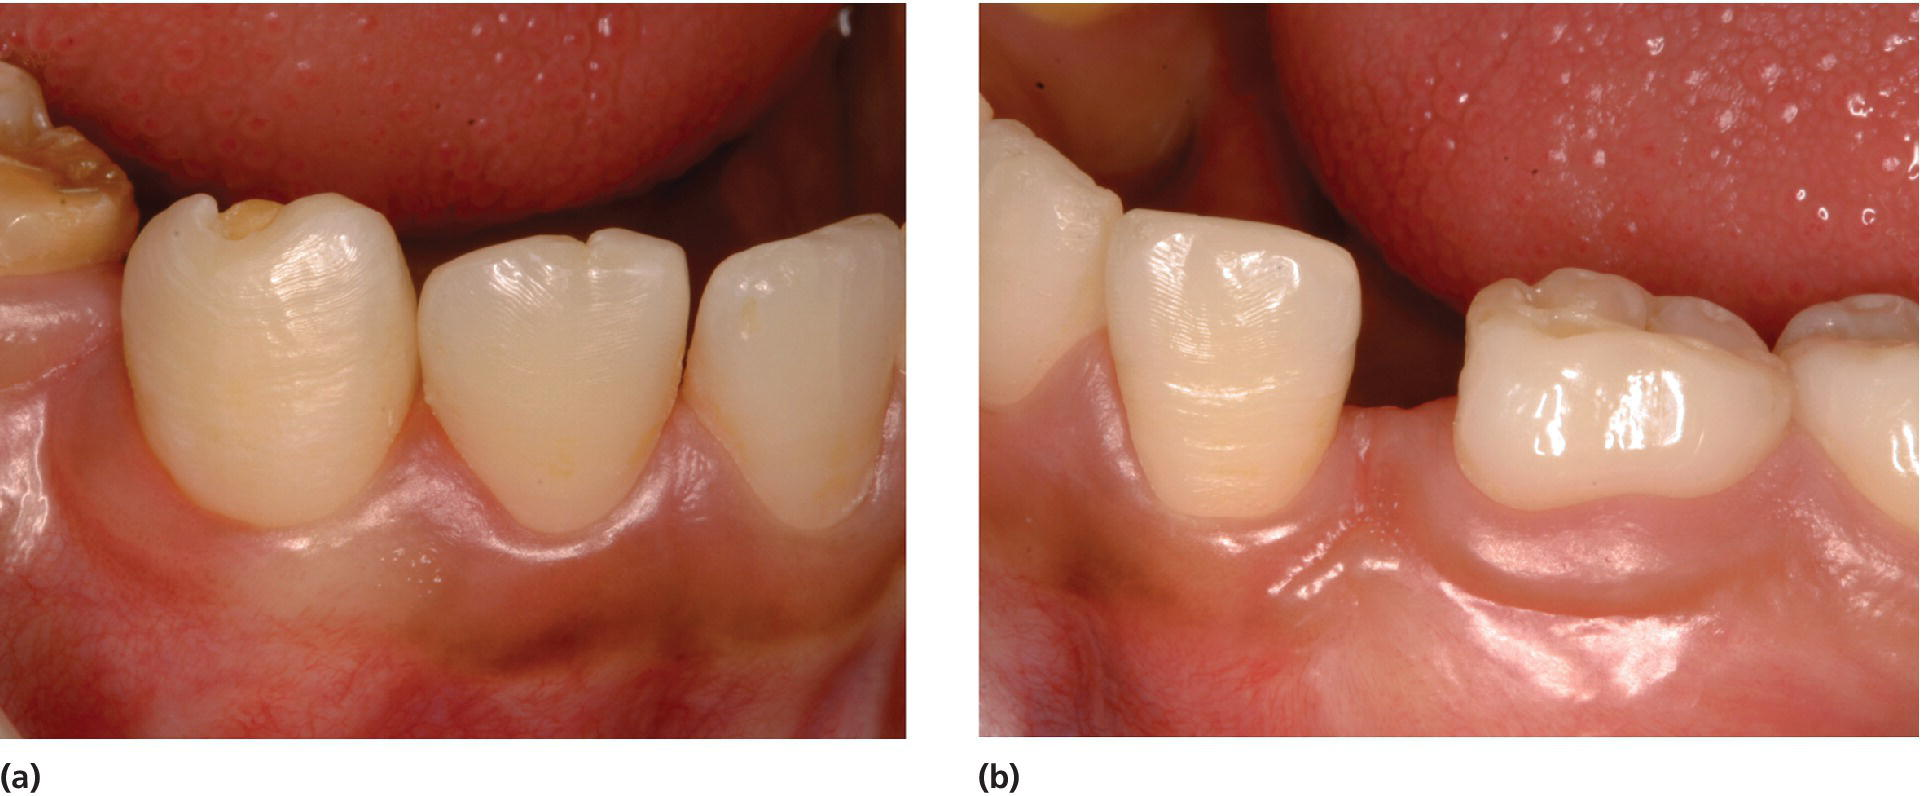 2 Photos displaying hypoplasia with exposure of dentin of the right lower permanent canine (left) and absence of the left lower permanent canine due to removal of the tooth germ (right).